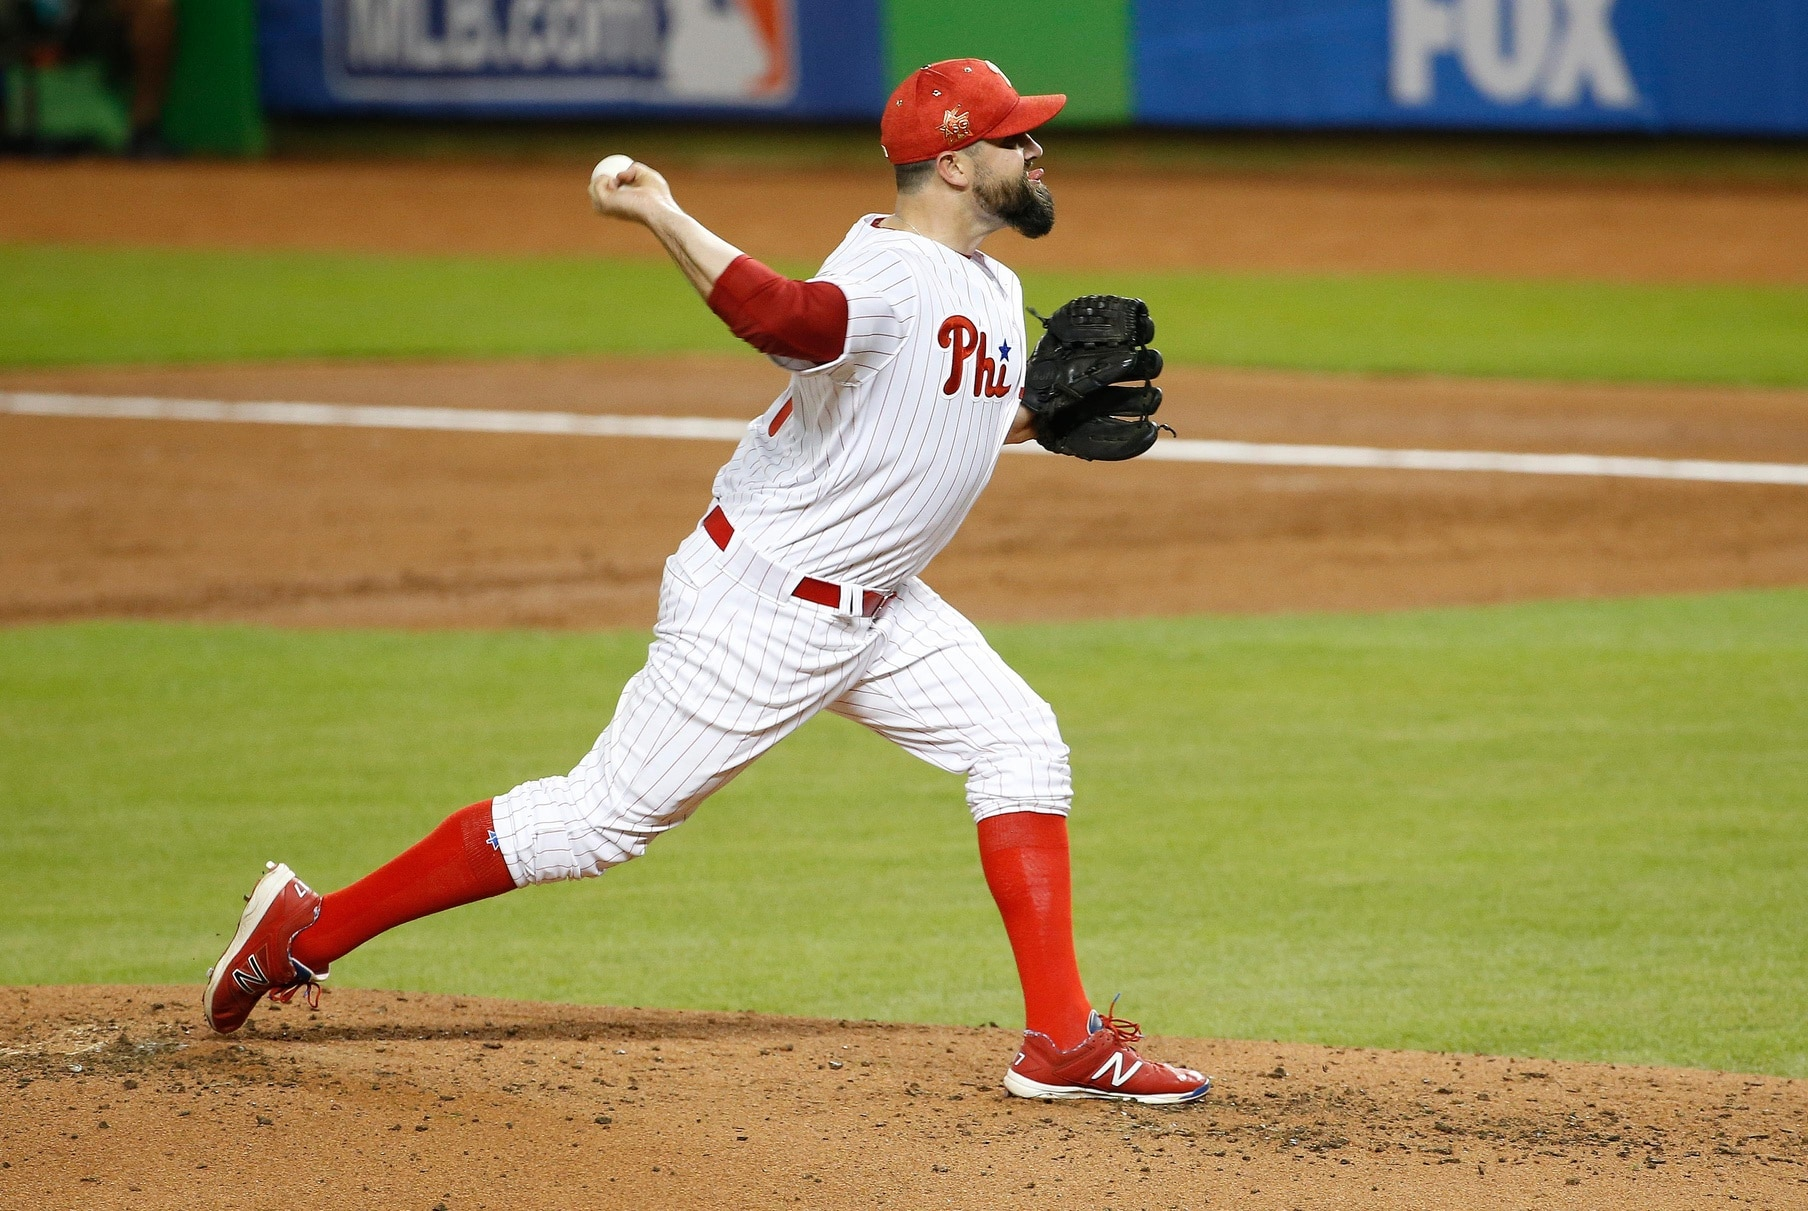 The Rockies have acquired Pat Neshek from the Phillies